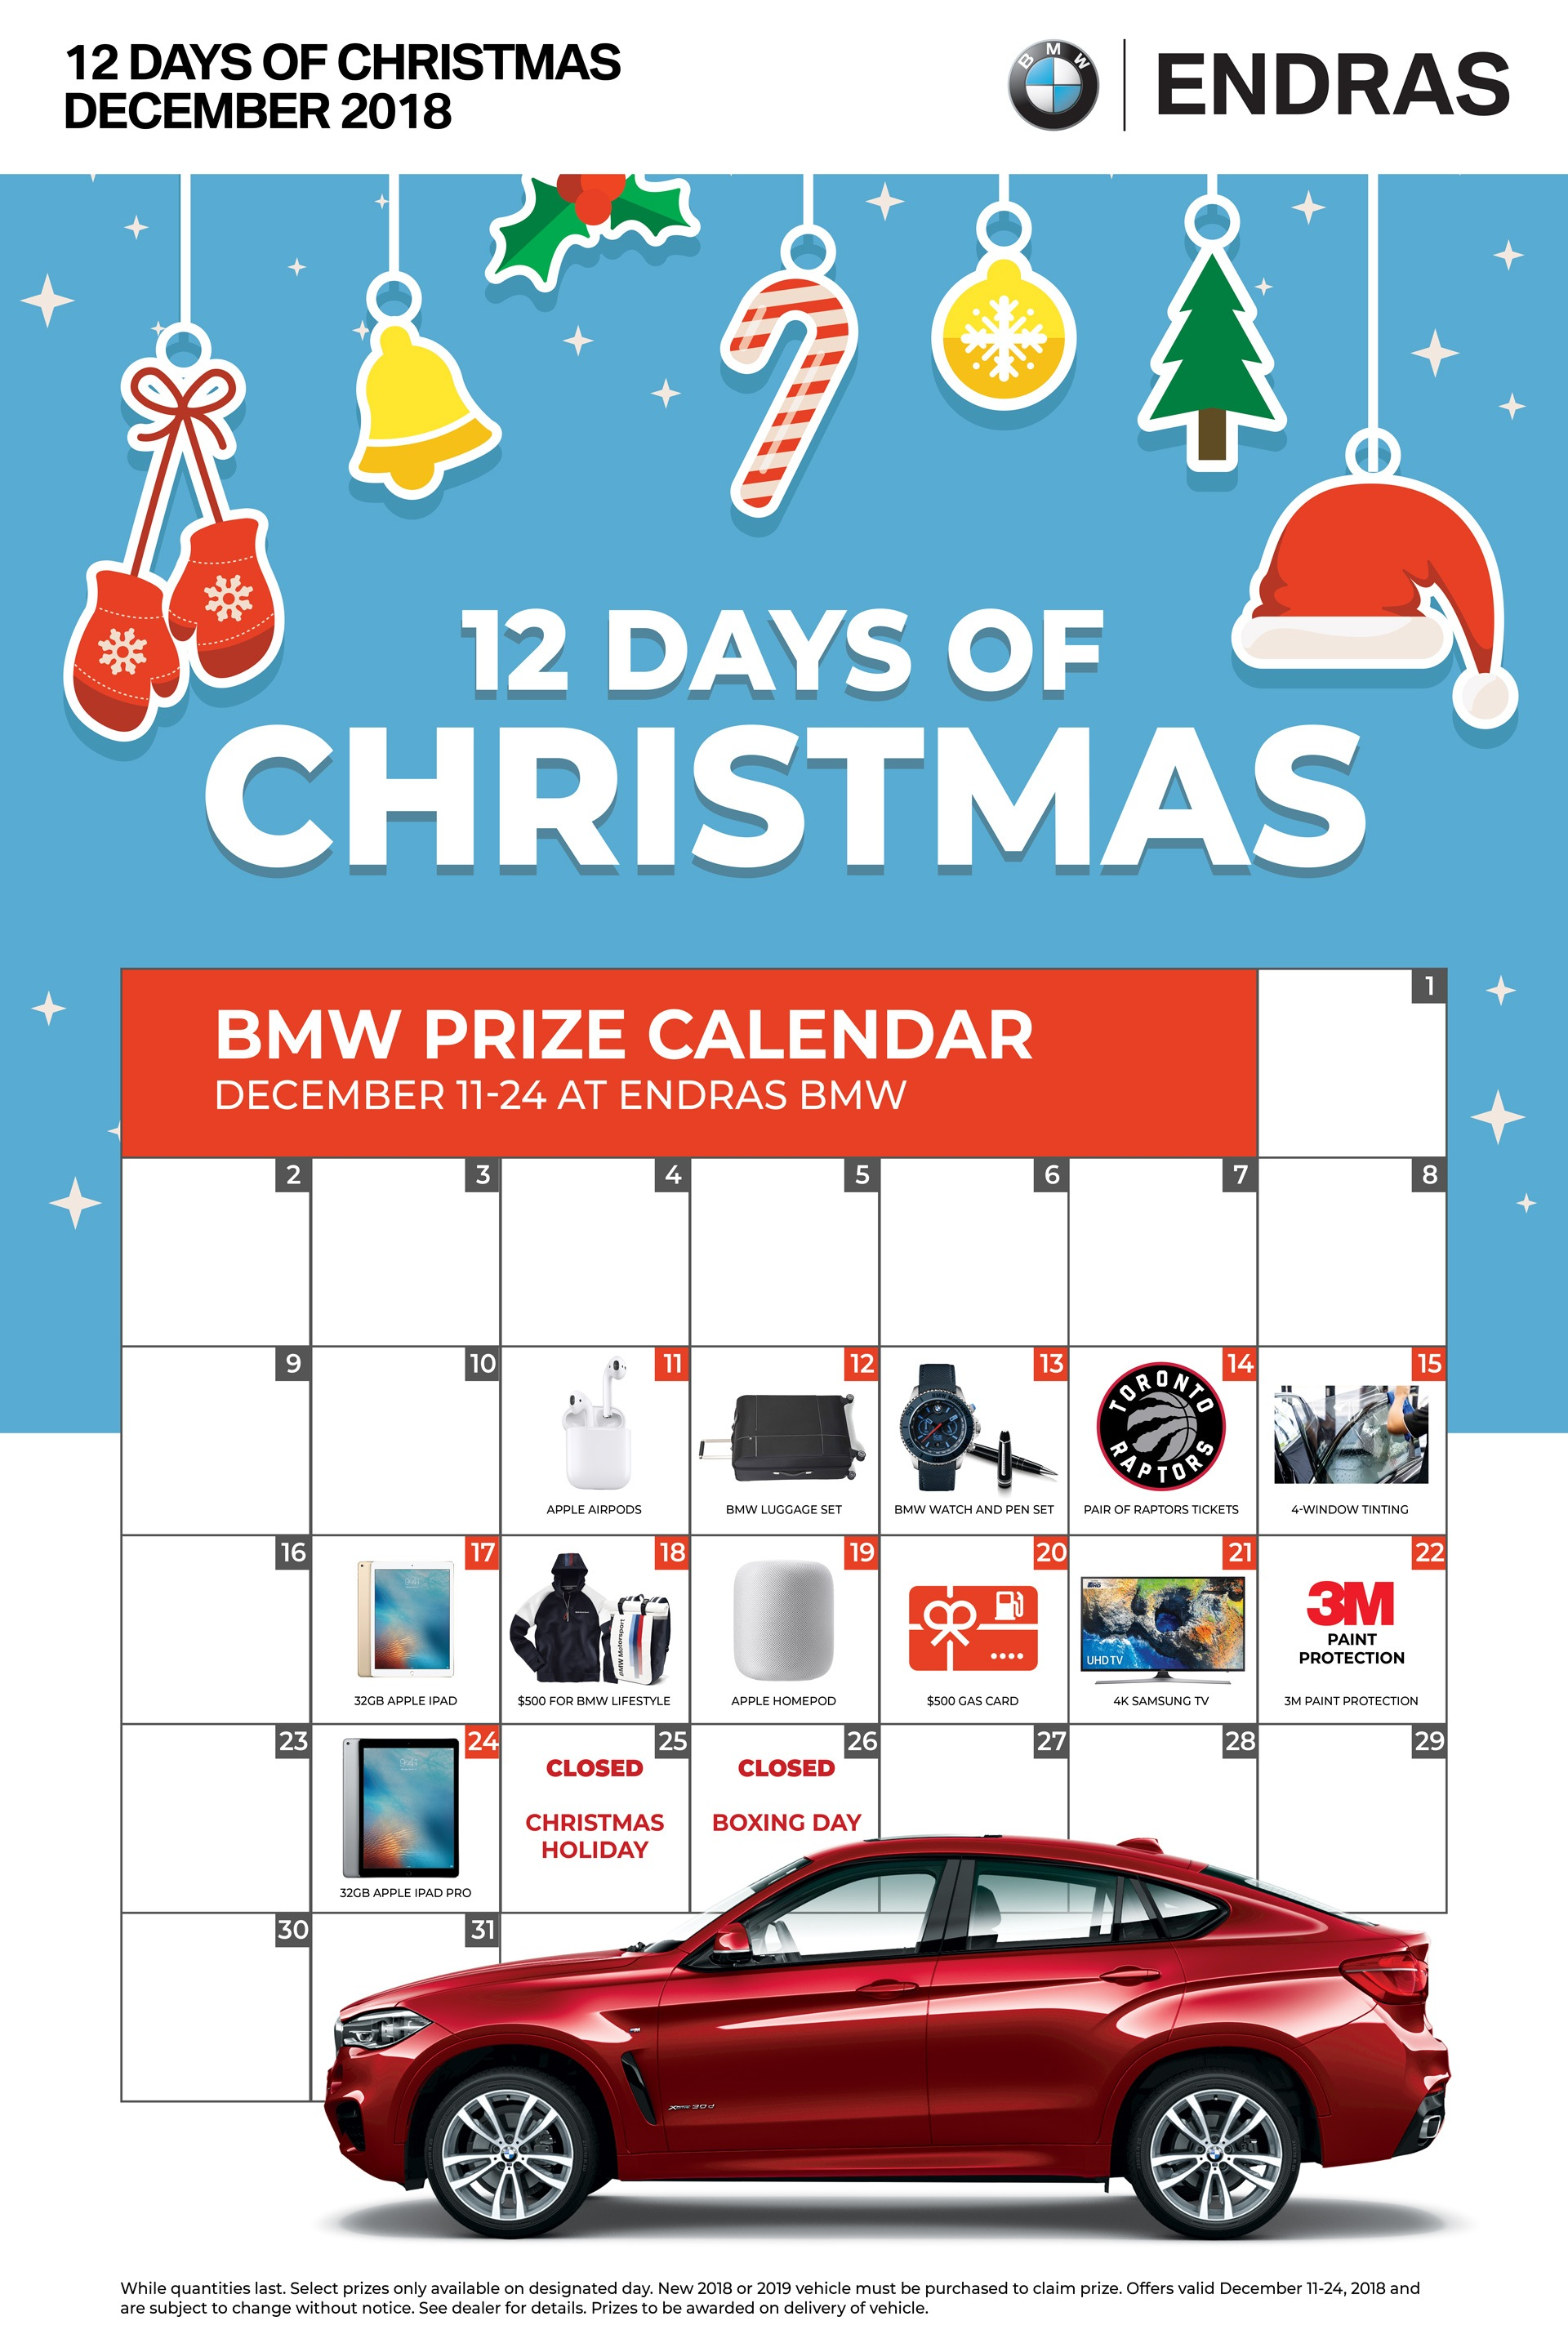 Endras BMW Christmas 12 Days of Christmas Giveaways